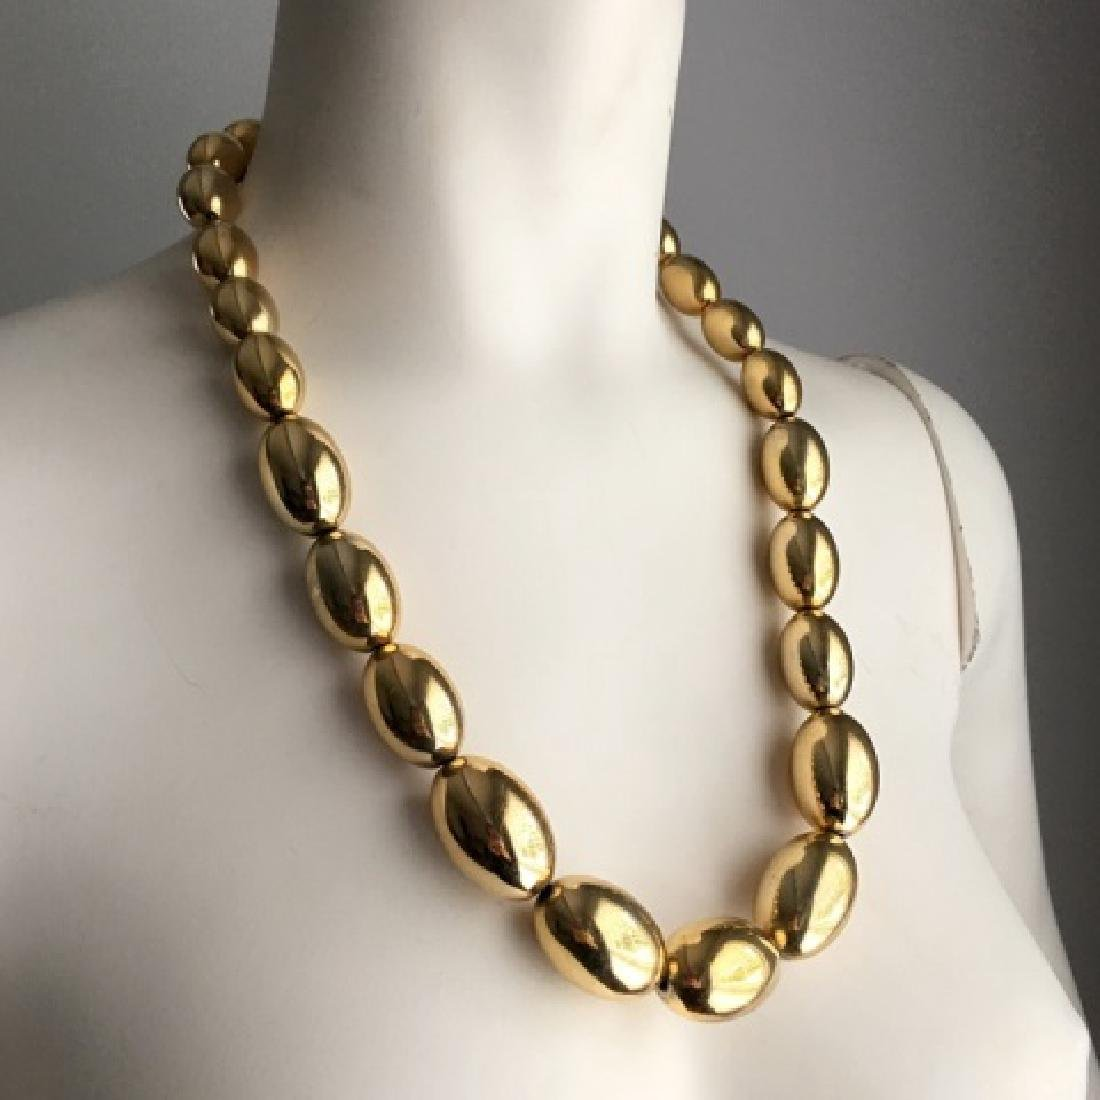 Vintage 1980s Gold Tone Costume Jewelry Set - 3